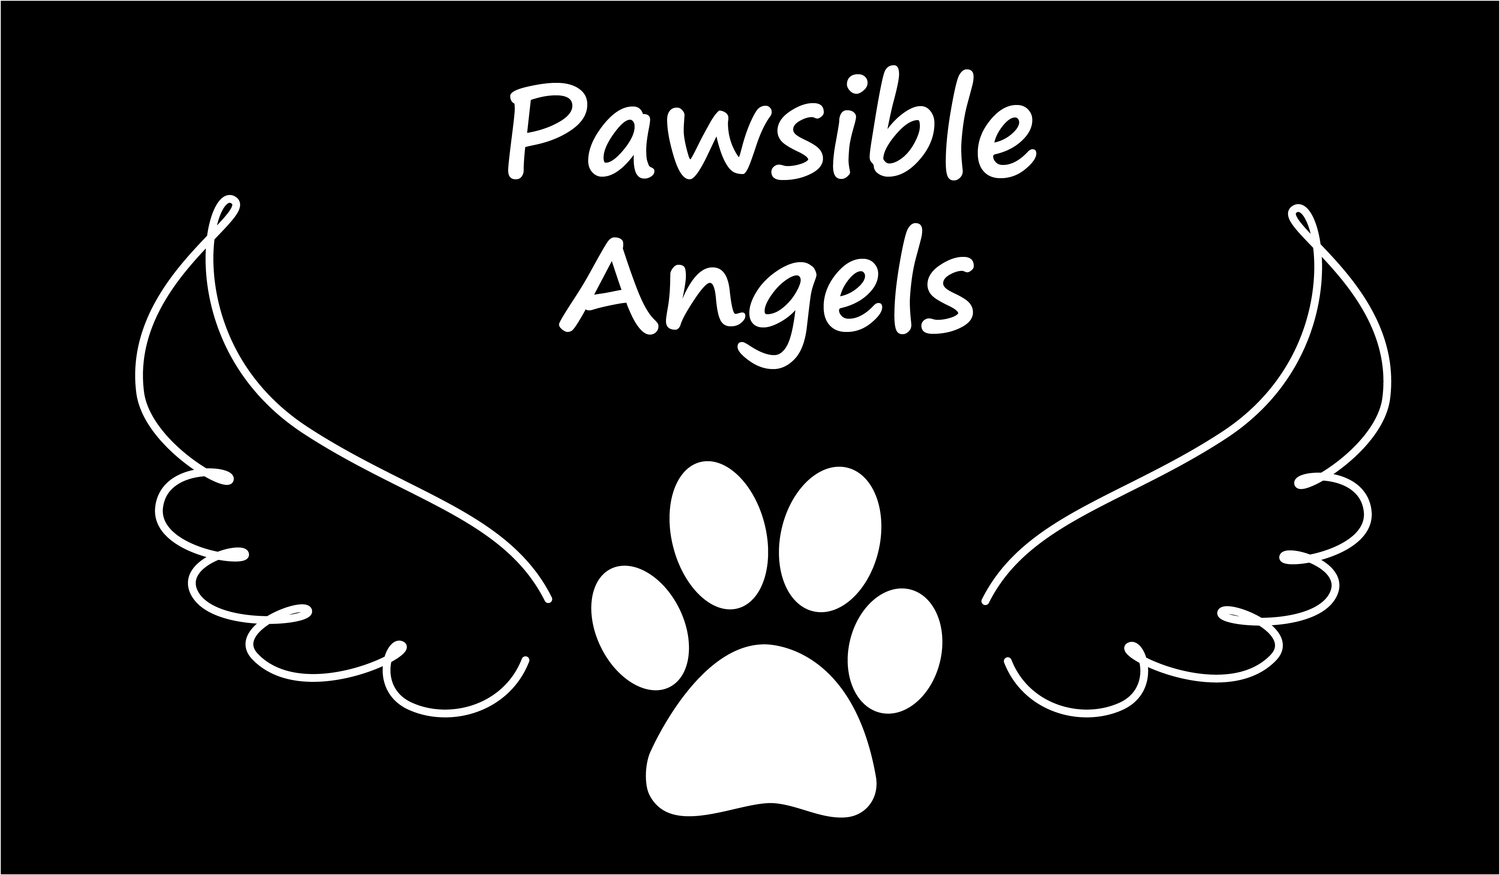 Pawsible Angels